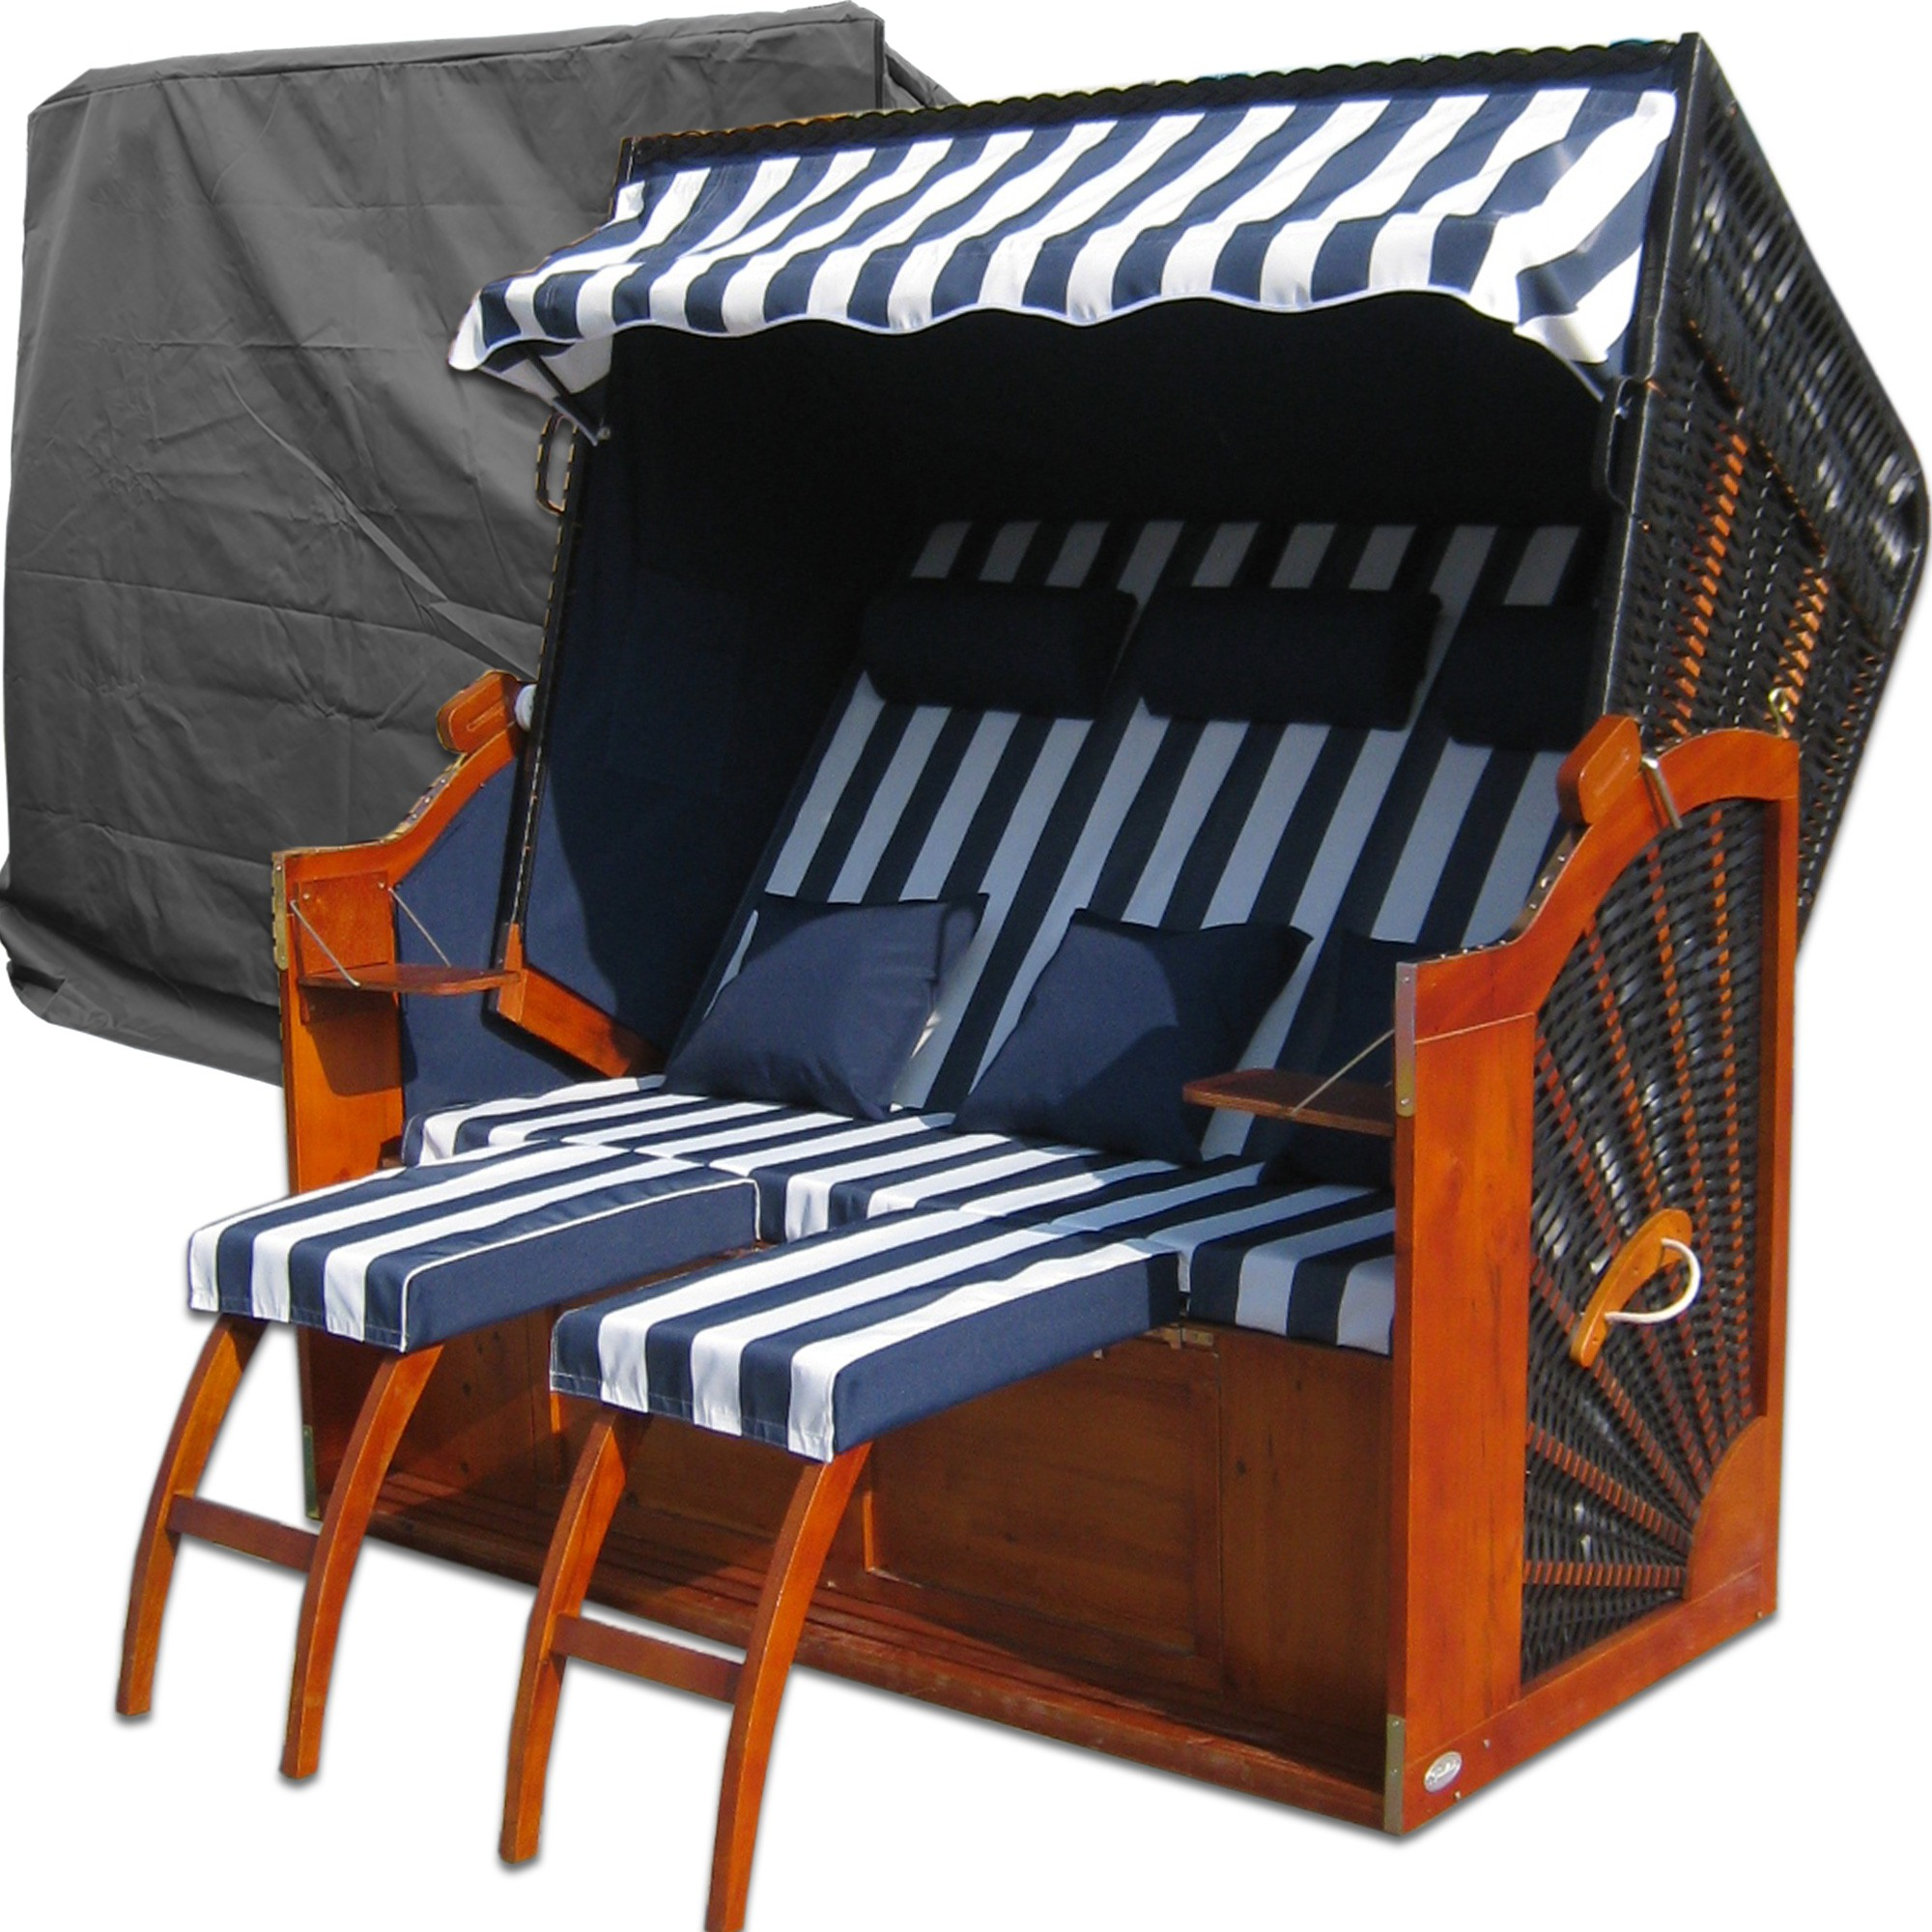 strandkorb blau kaufen xxl strandkorb g nstig. Black Bedroom Furniture Sets. Home Design Ideas